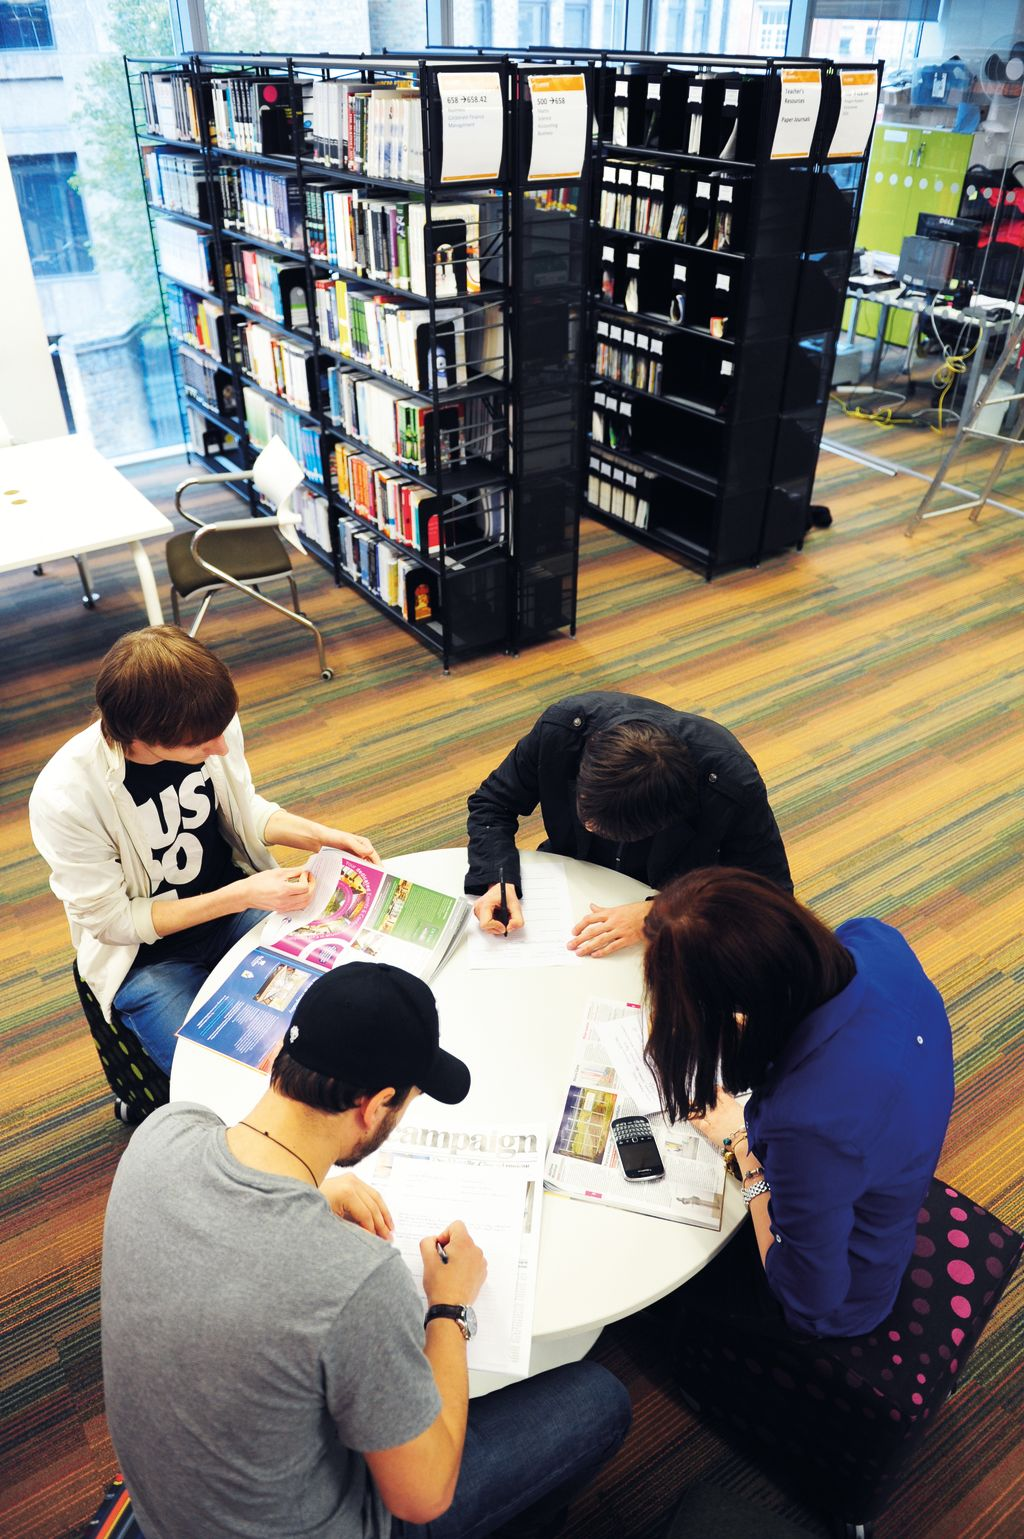 International students in the Learning Resource Centre (LRC)